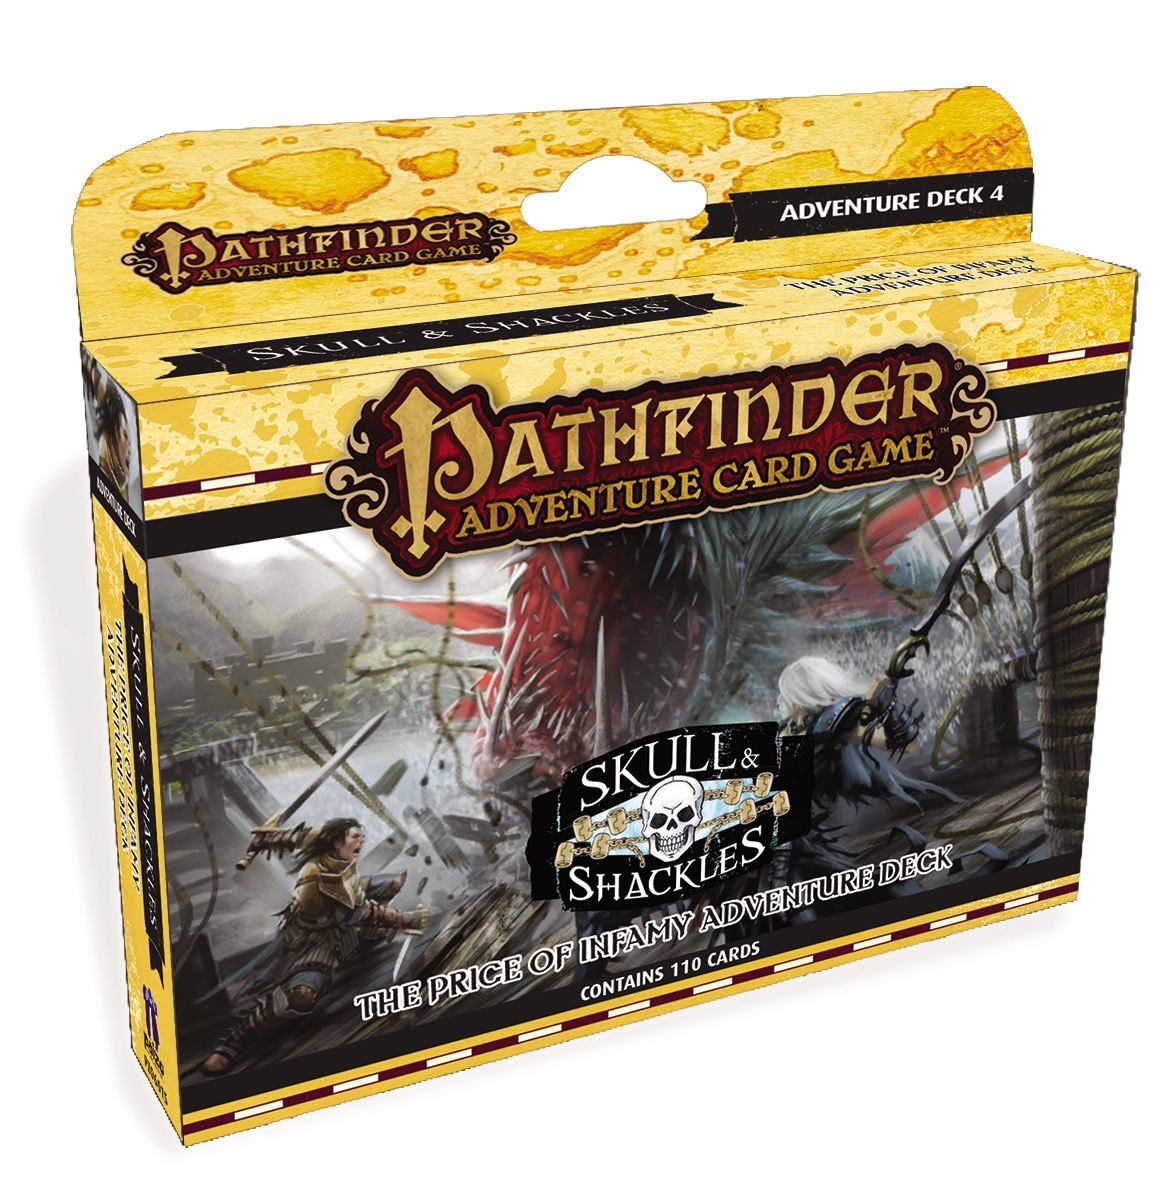 Pathfinder Adventure Card Game: The Price Of Infamy Adventure Deck Box Front